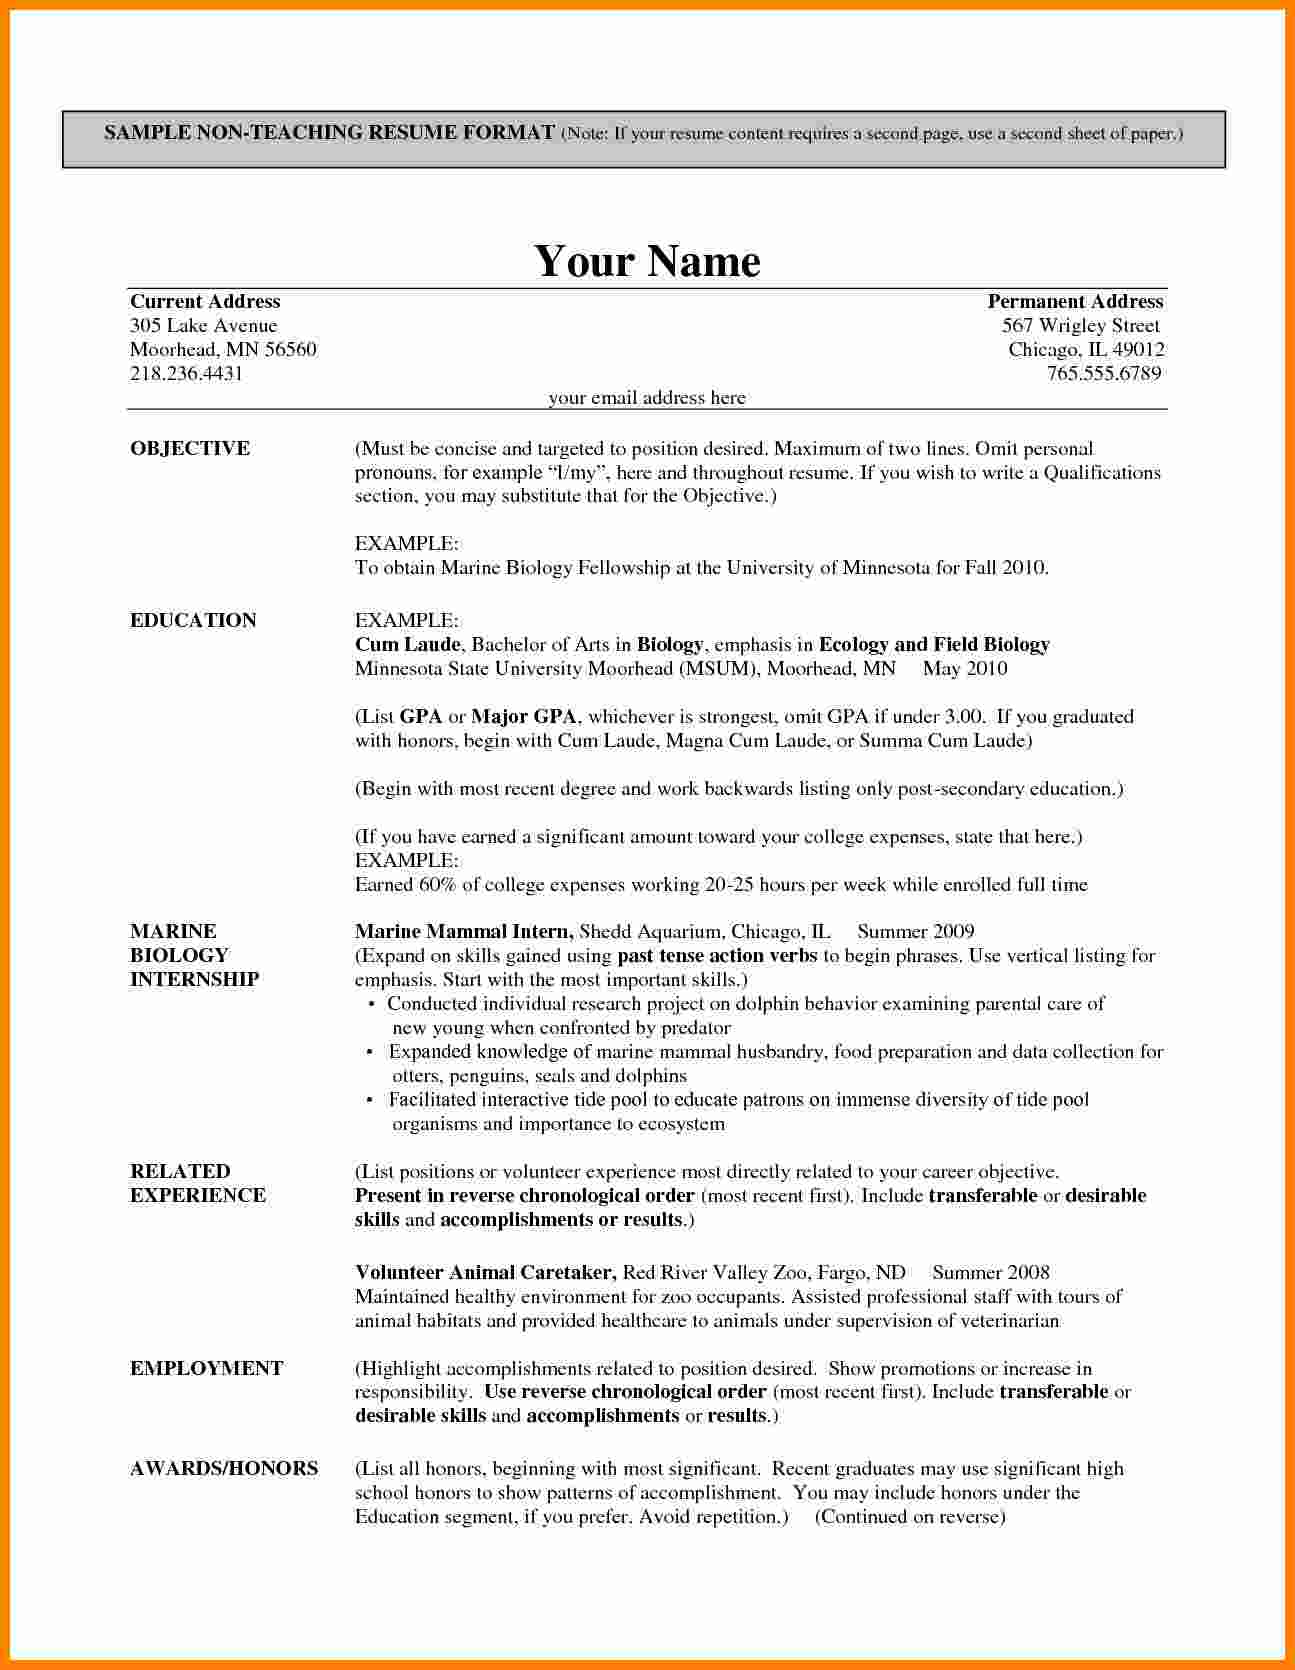 Resume Format Teacher